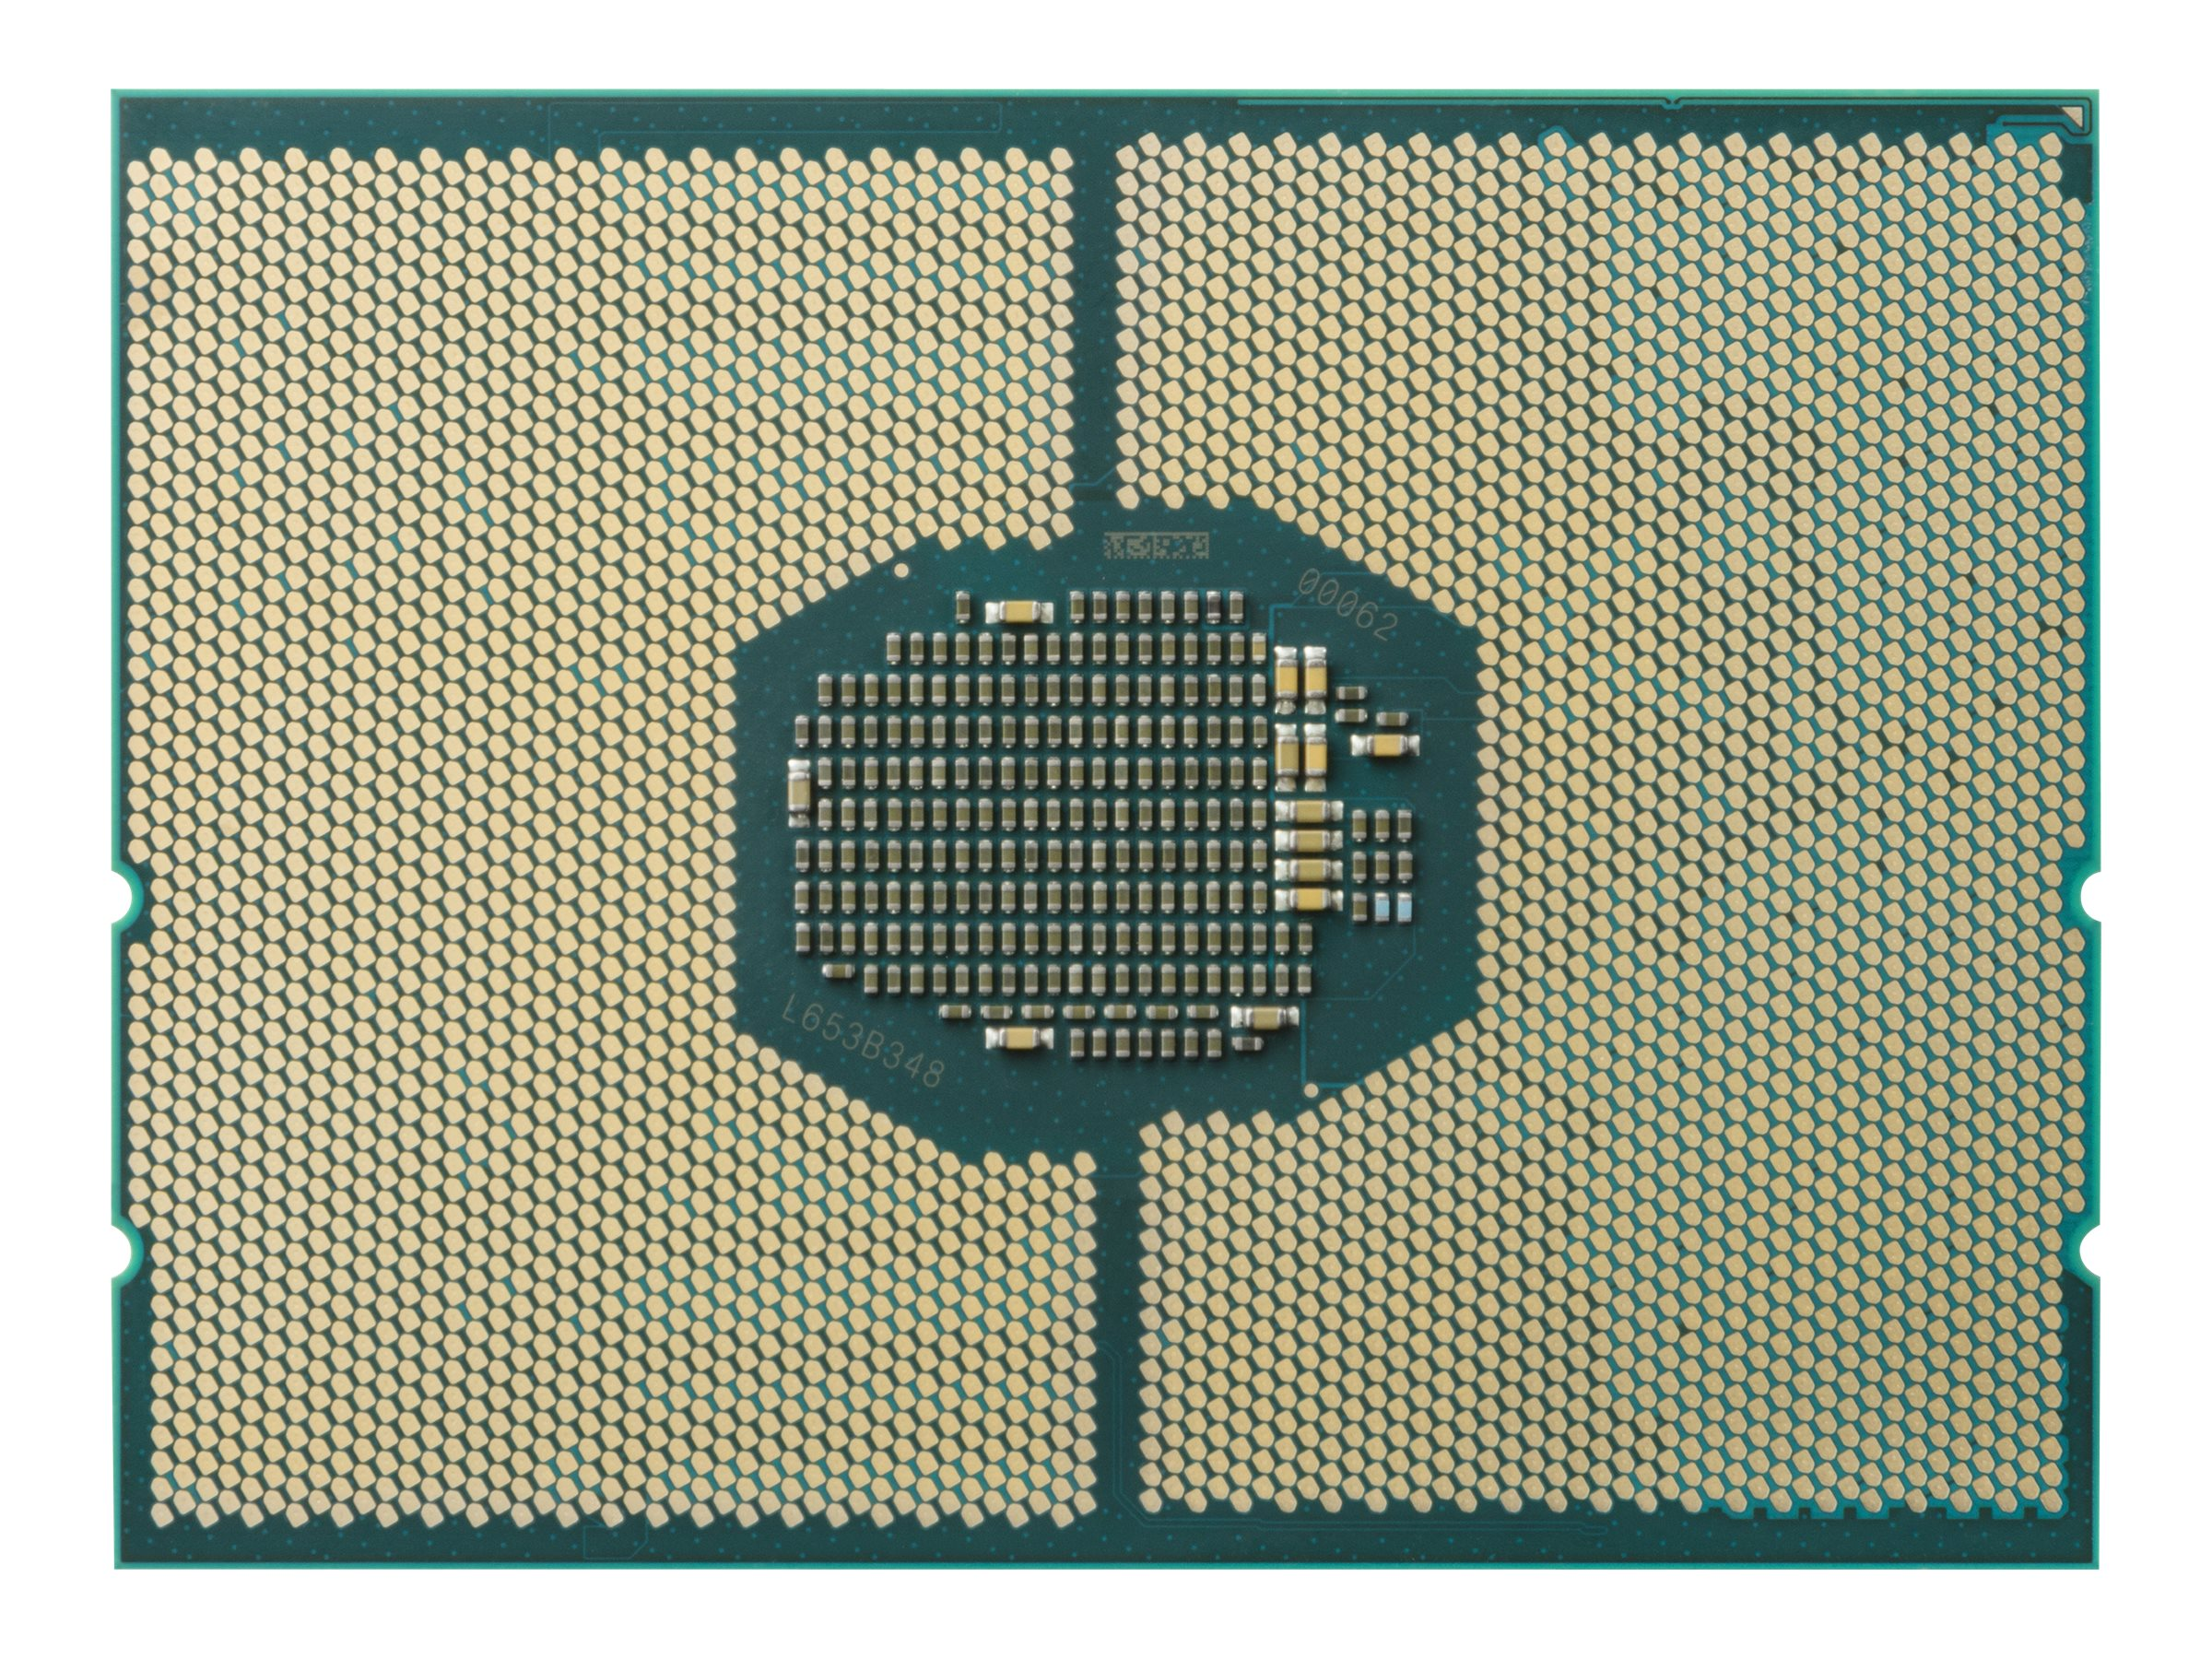 Intel Xeon Gold 6234 / 3.3 GHz processor